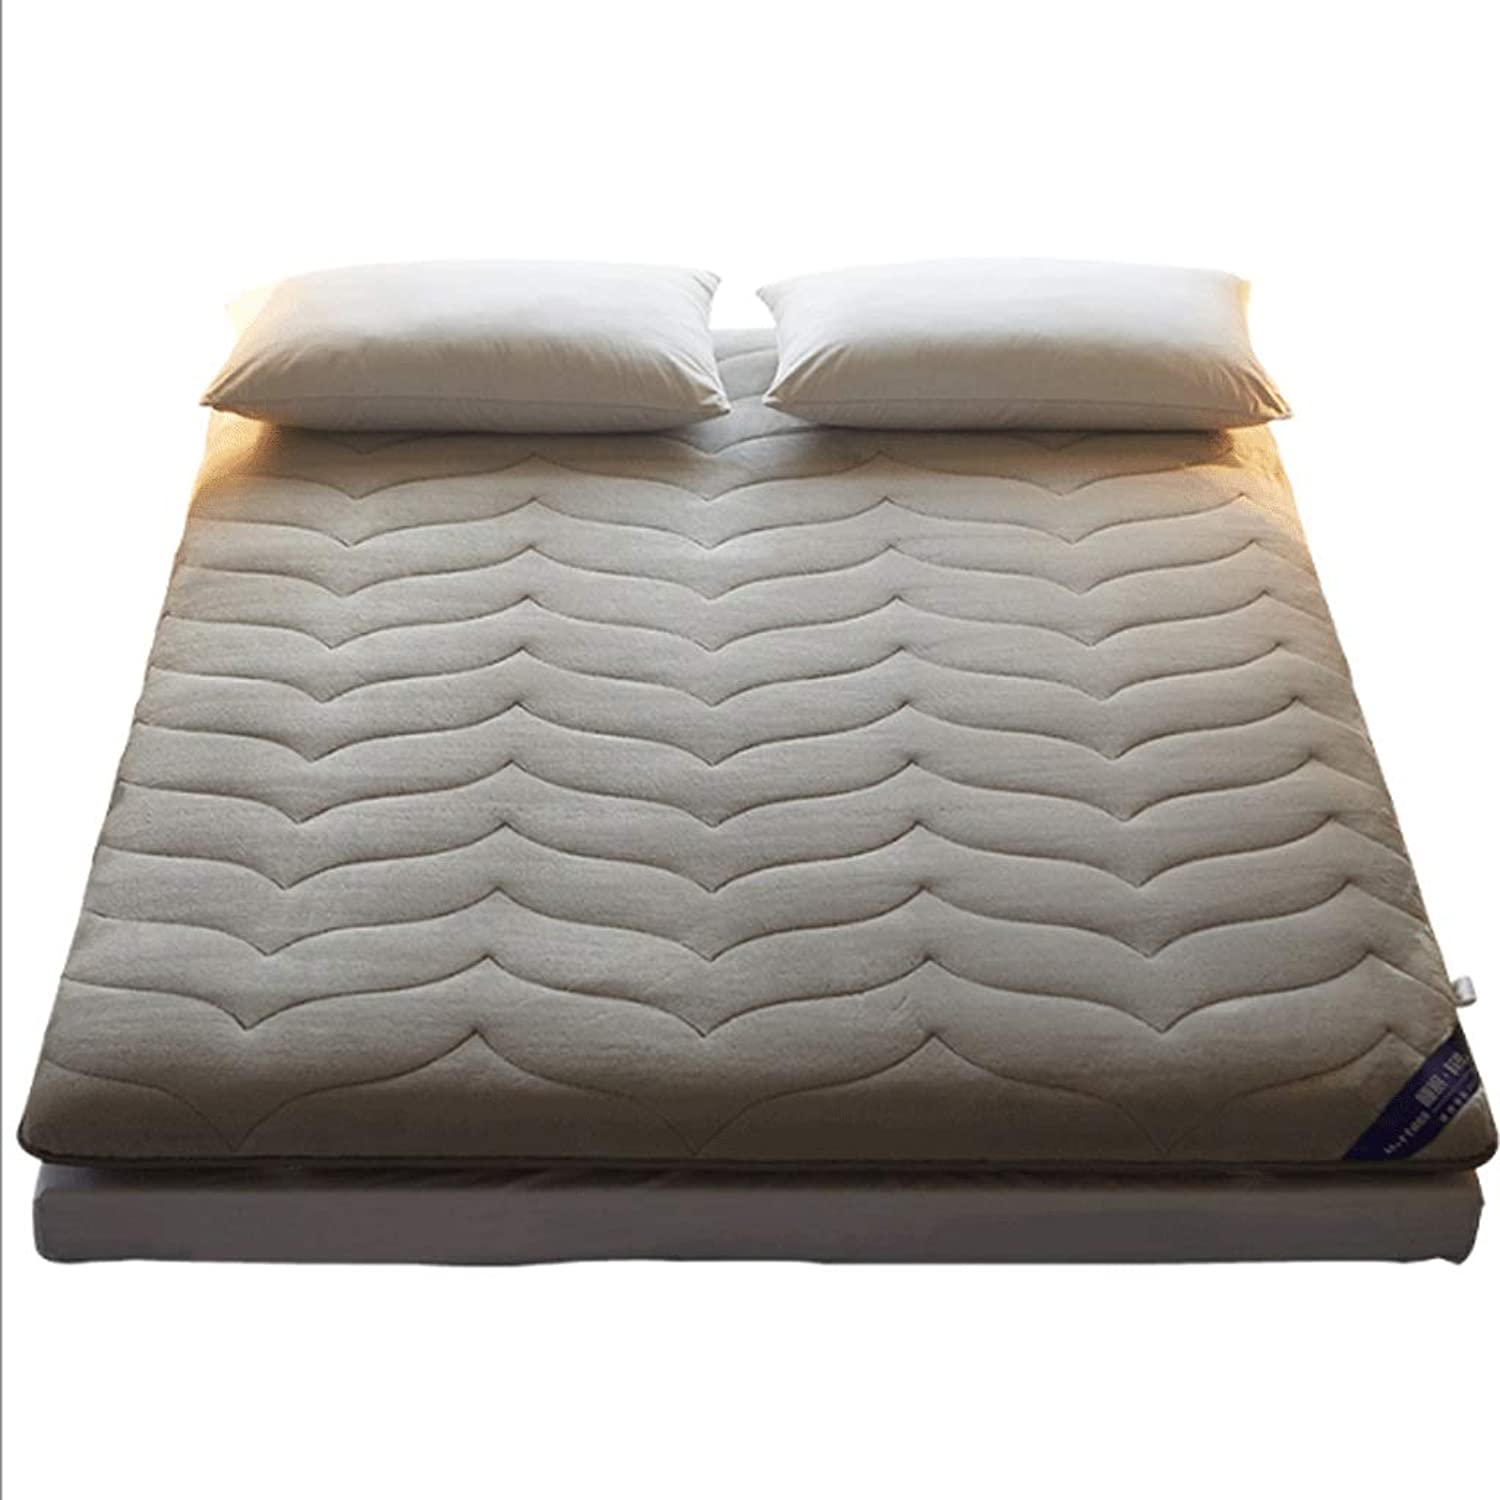 7cm Thick Mattress, Comfortable Warm Sponge Pad, Both Sides are Available (color   A, Size   90x200cm)